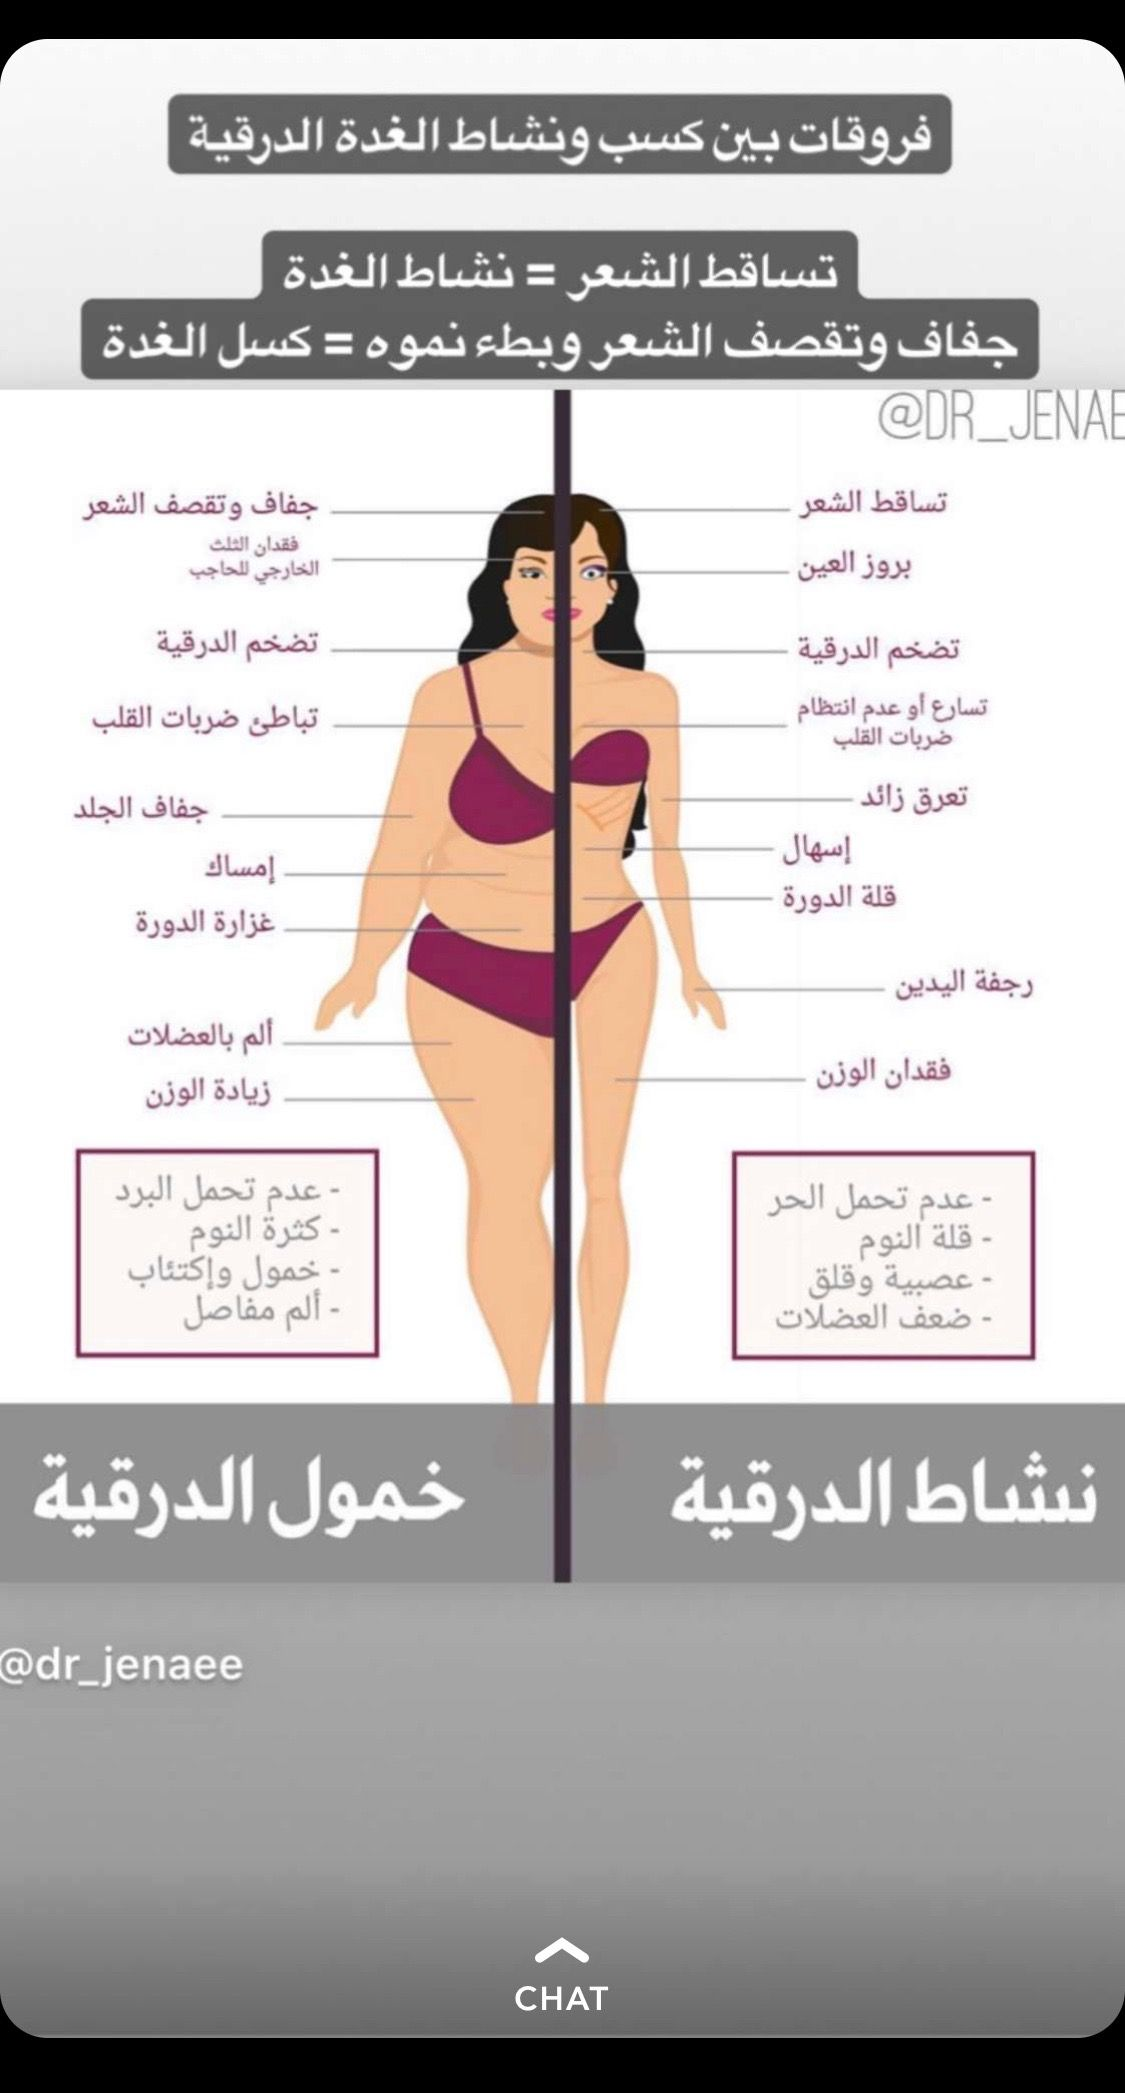 الفرق بين ضعف او فرط الغدة الدرقيه Health Fitness Nutrition Health And Wellness Center Body Health